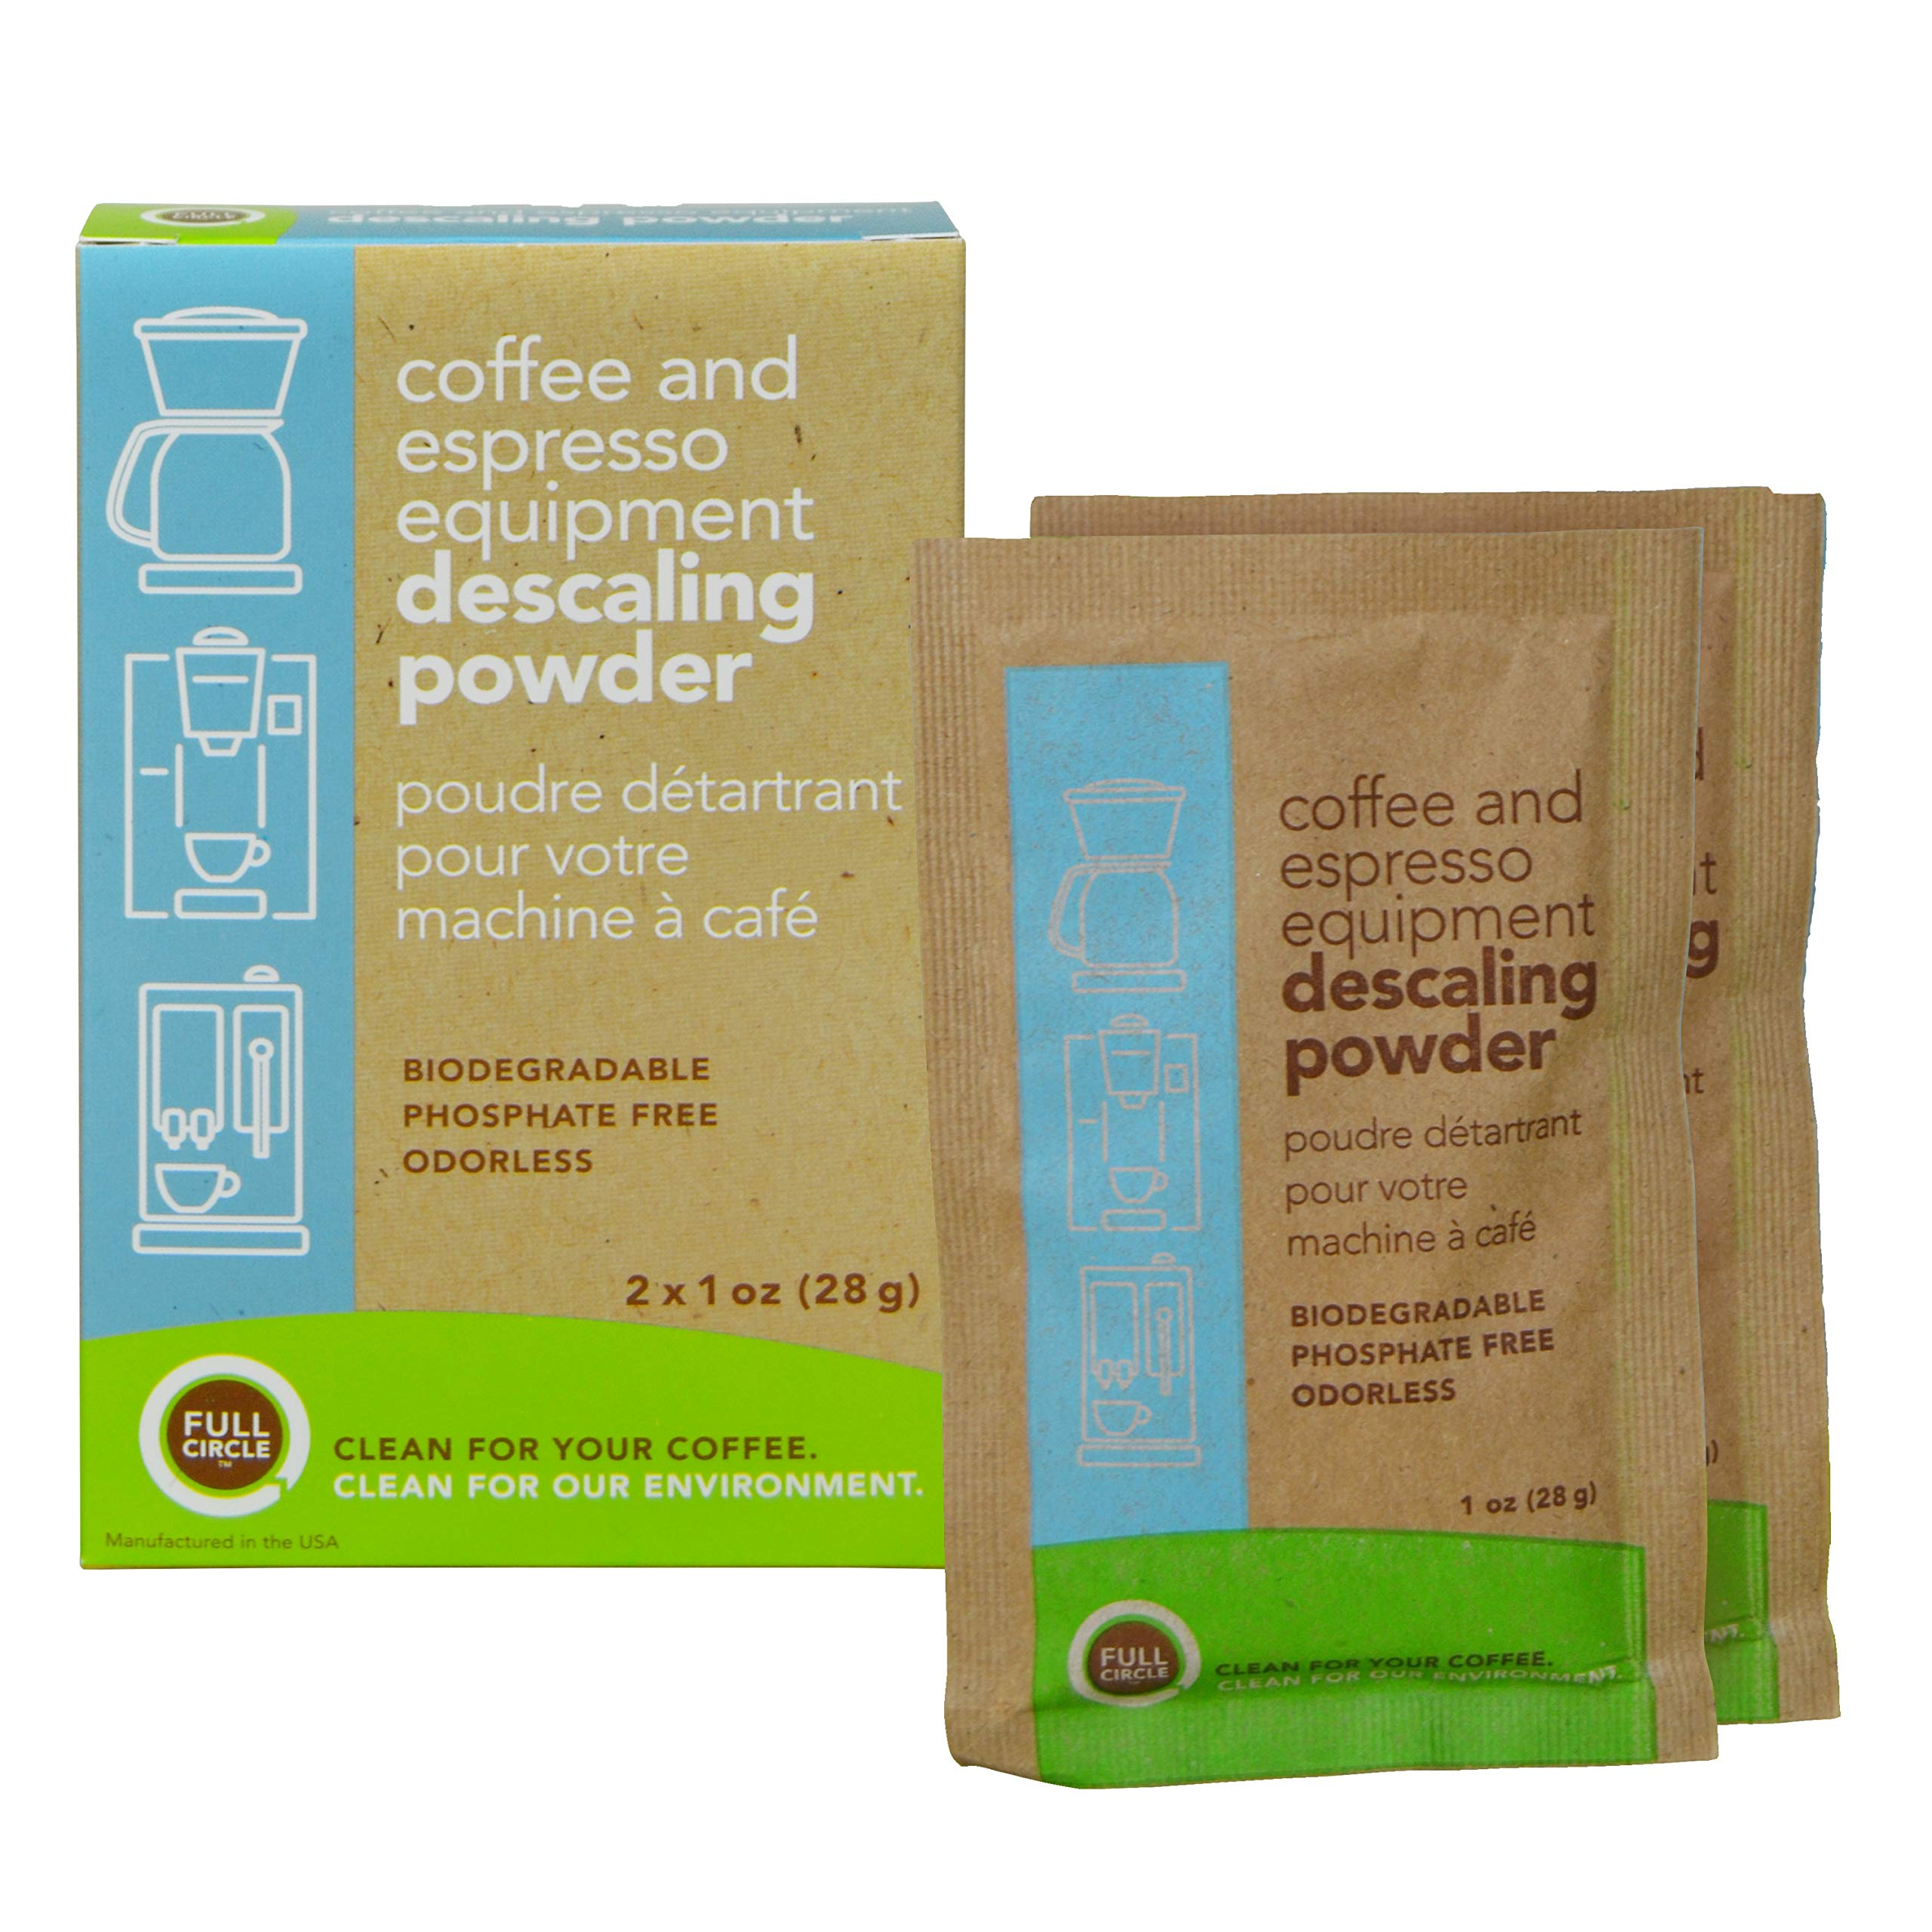 Full Circle Coffee and Espresso Machine Descaler - 2 Single Use Packets - Descaling Powder Safe